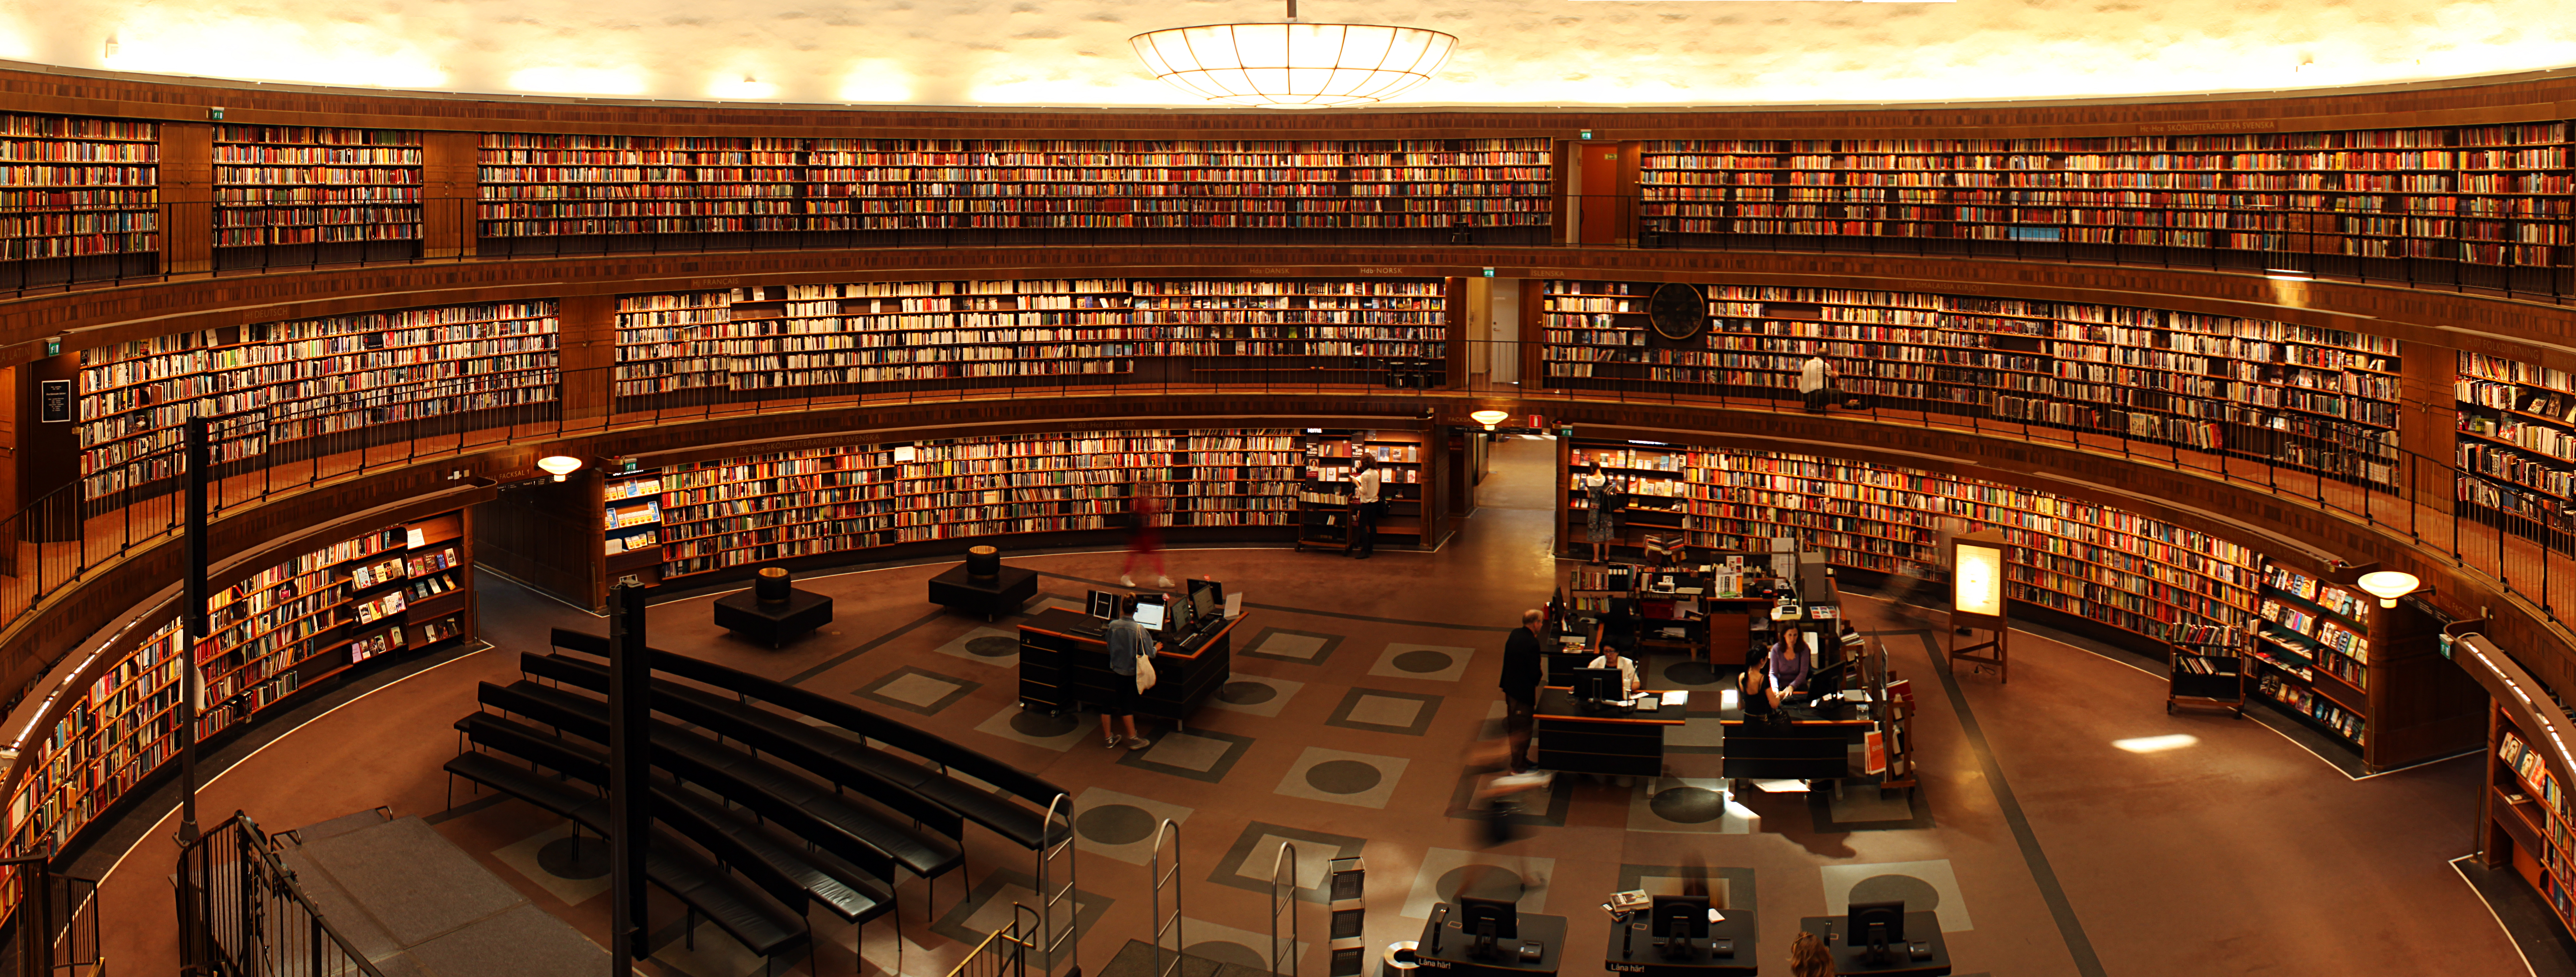 free stock photos of library pexels